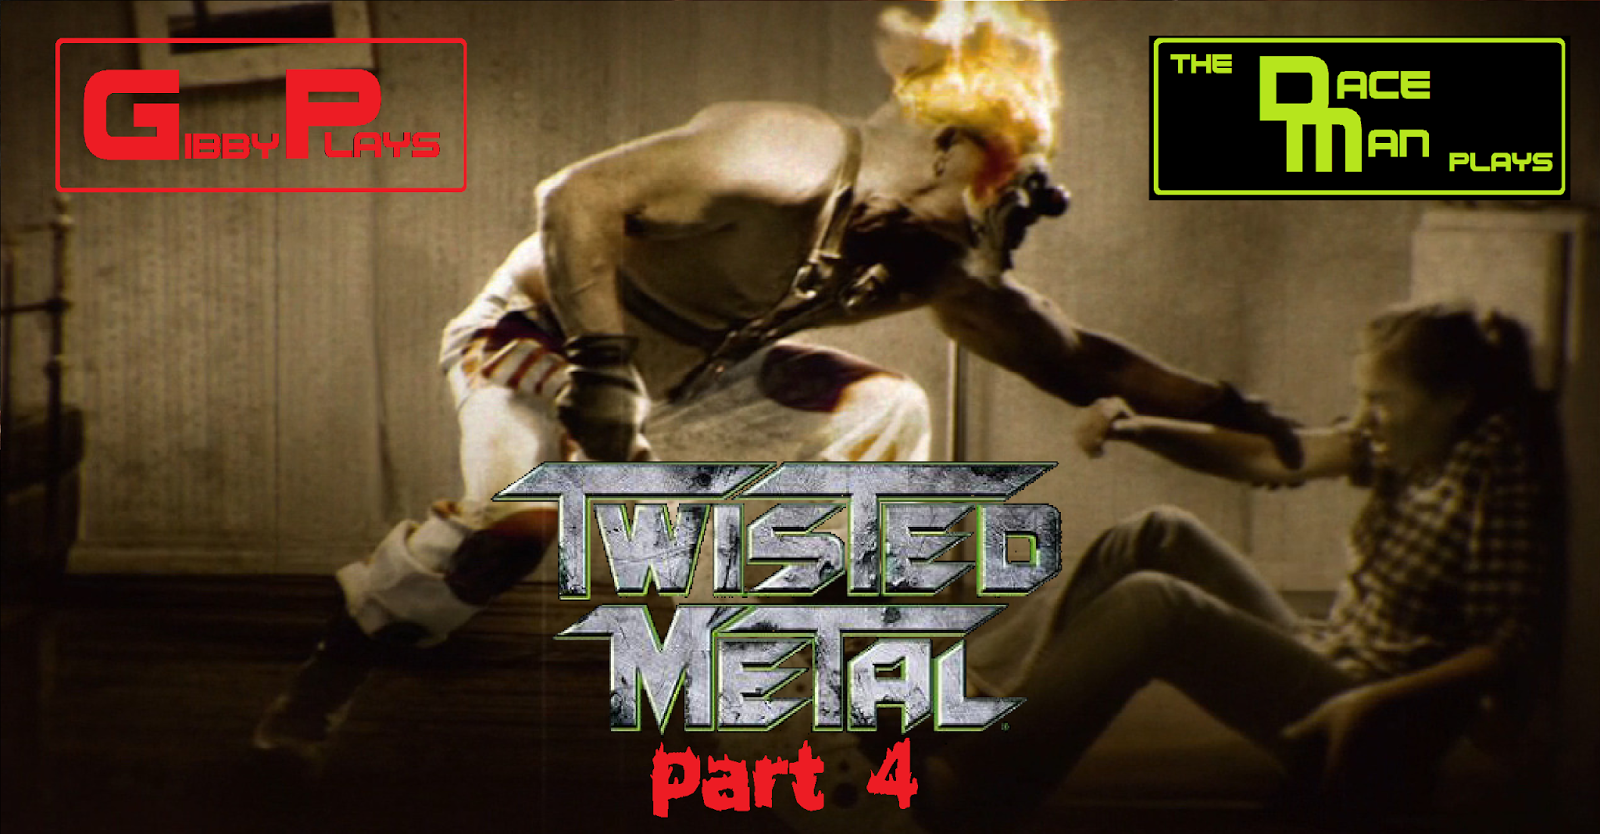 Twisted Metal Playstation 3 Walkthrough and GamePlay